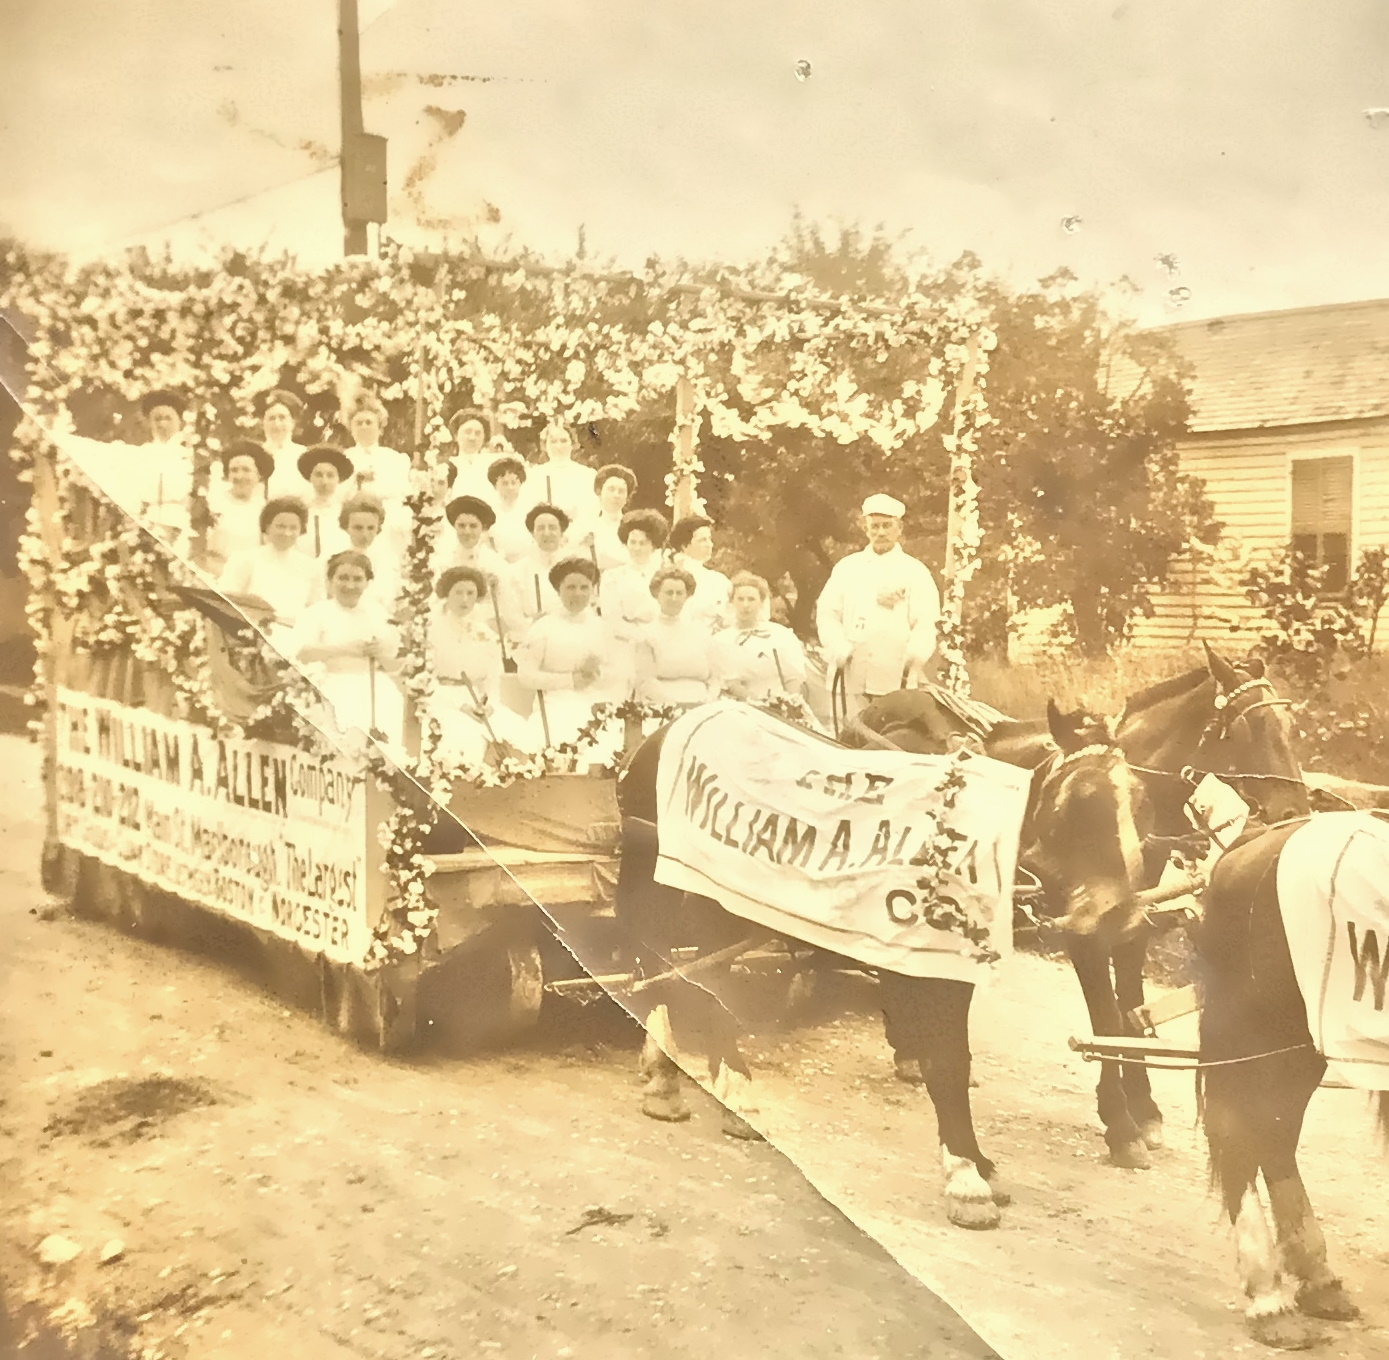 A horse-drawn carriage parading some of the William A. Allen Co. workers from the Marlboro store.